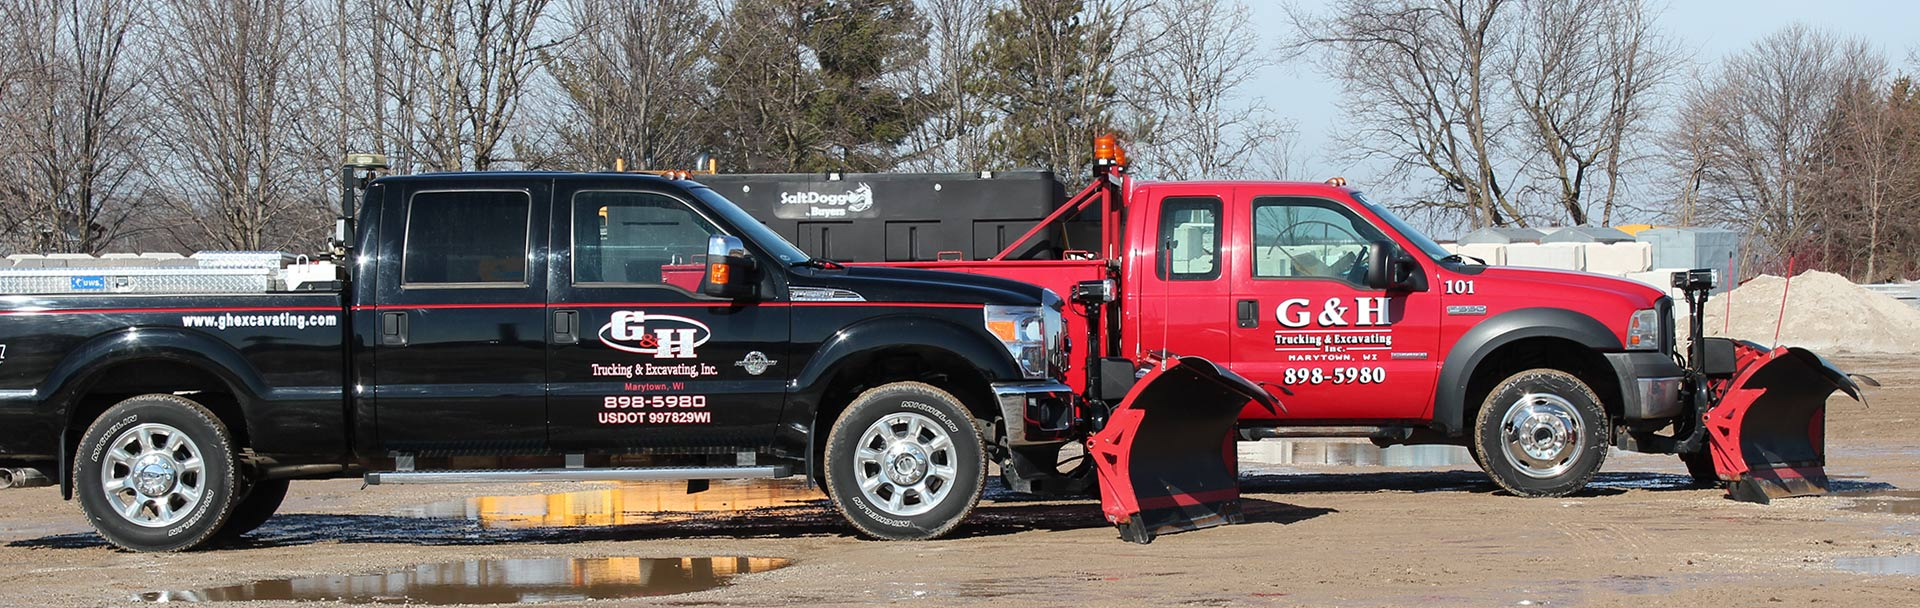 header-banner-snow-removal-services